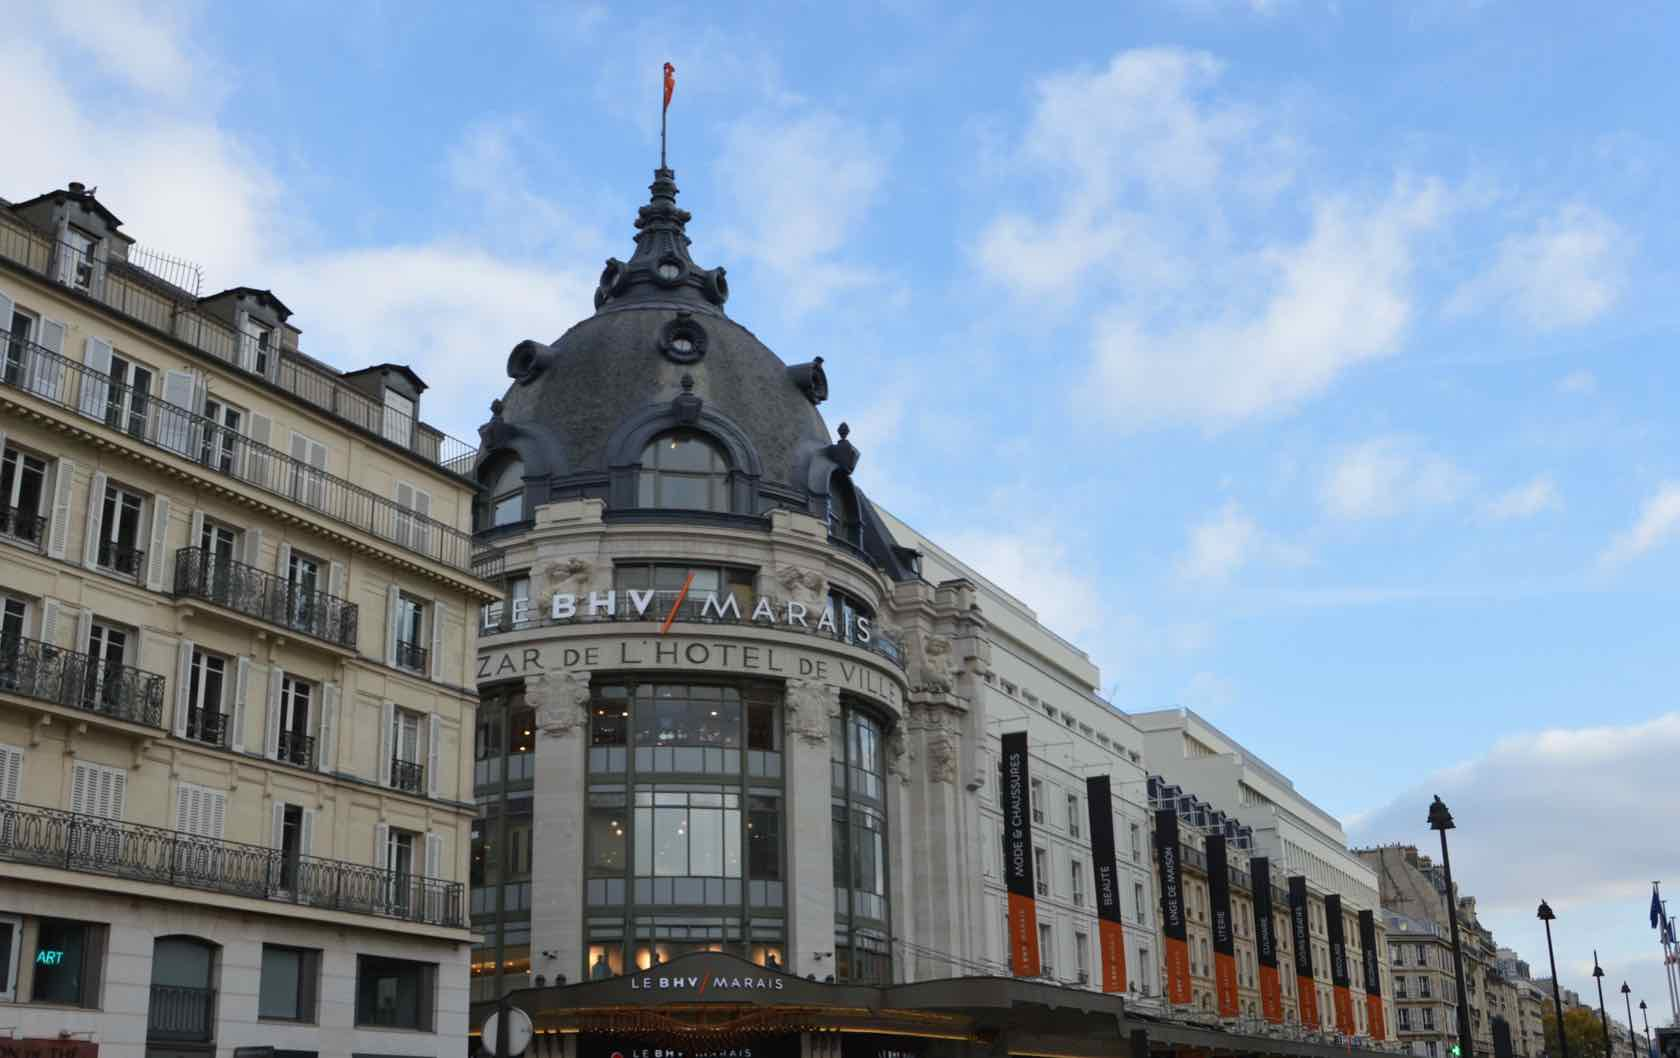 Soldes in France: Guide to Shopping the Biannual Sales in Paris